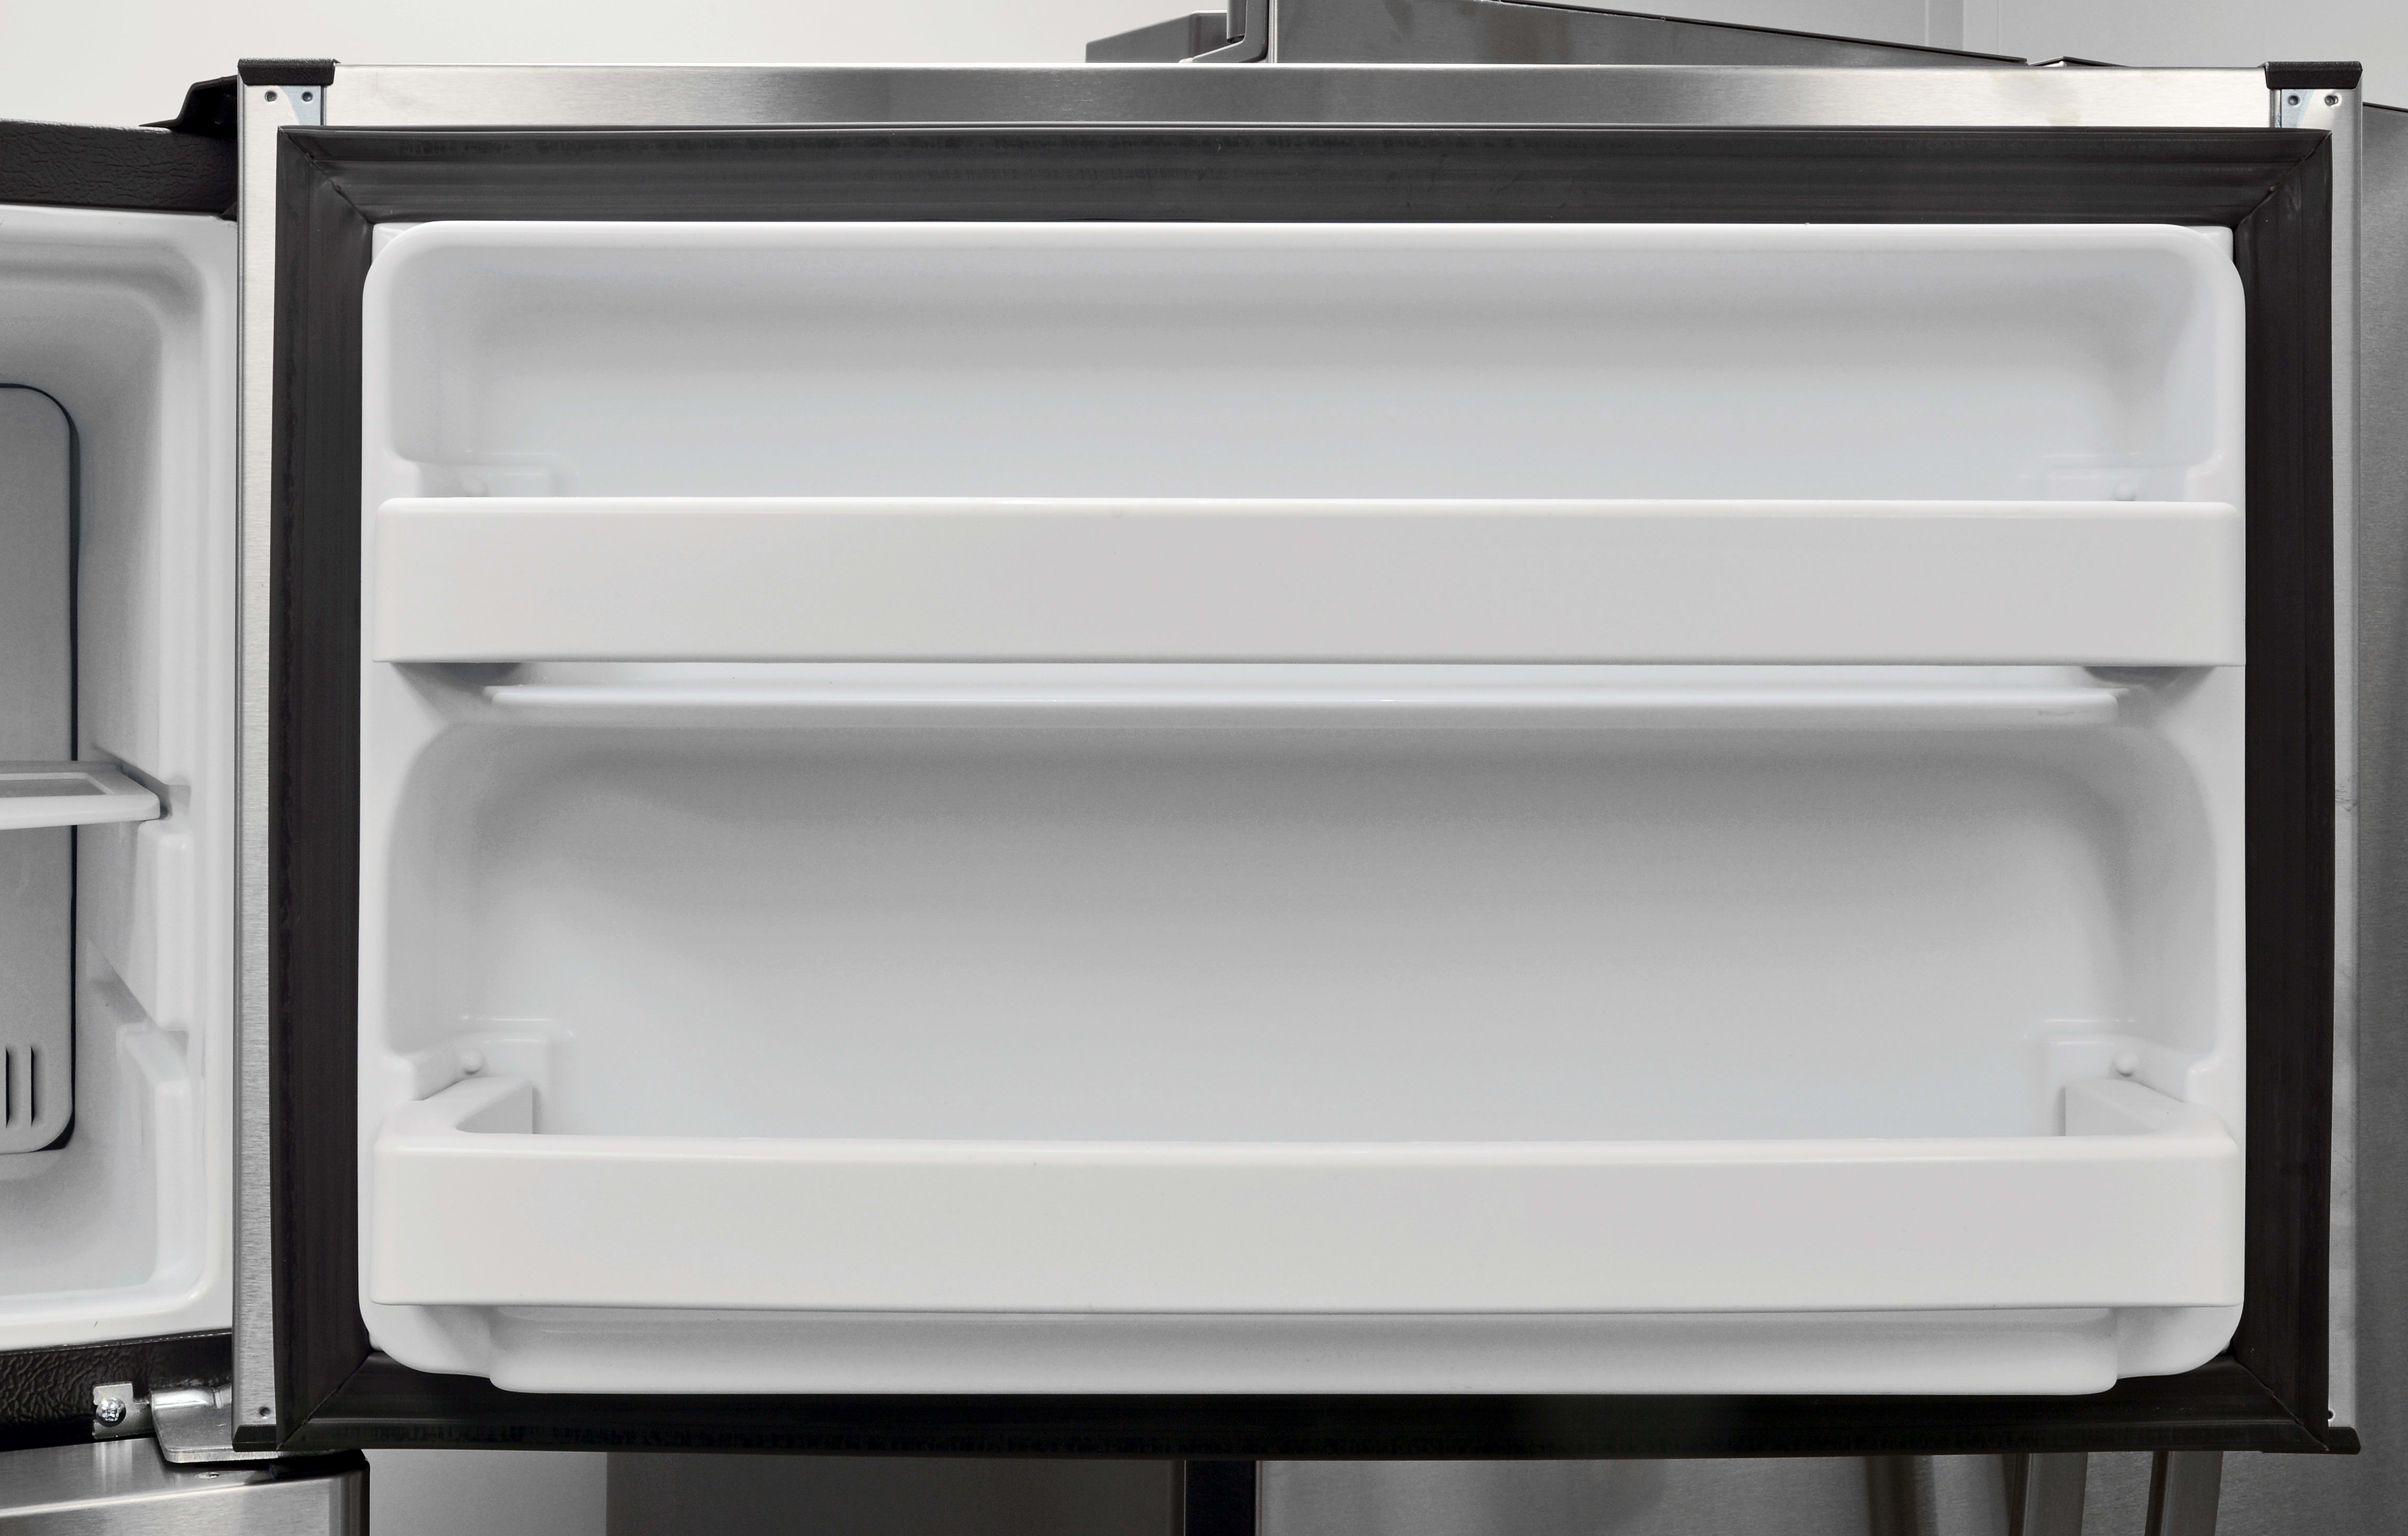 The GE GAS18P's freezer door offers some additional storage. It's fairly shallow, but should help keep track of smaller or loose items.